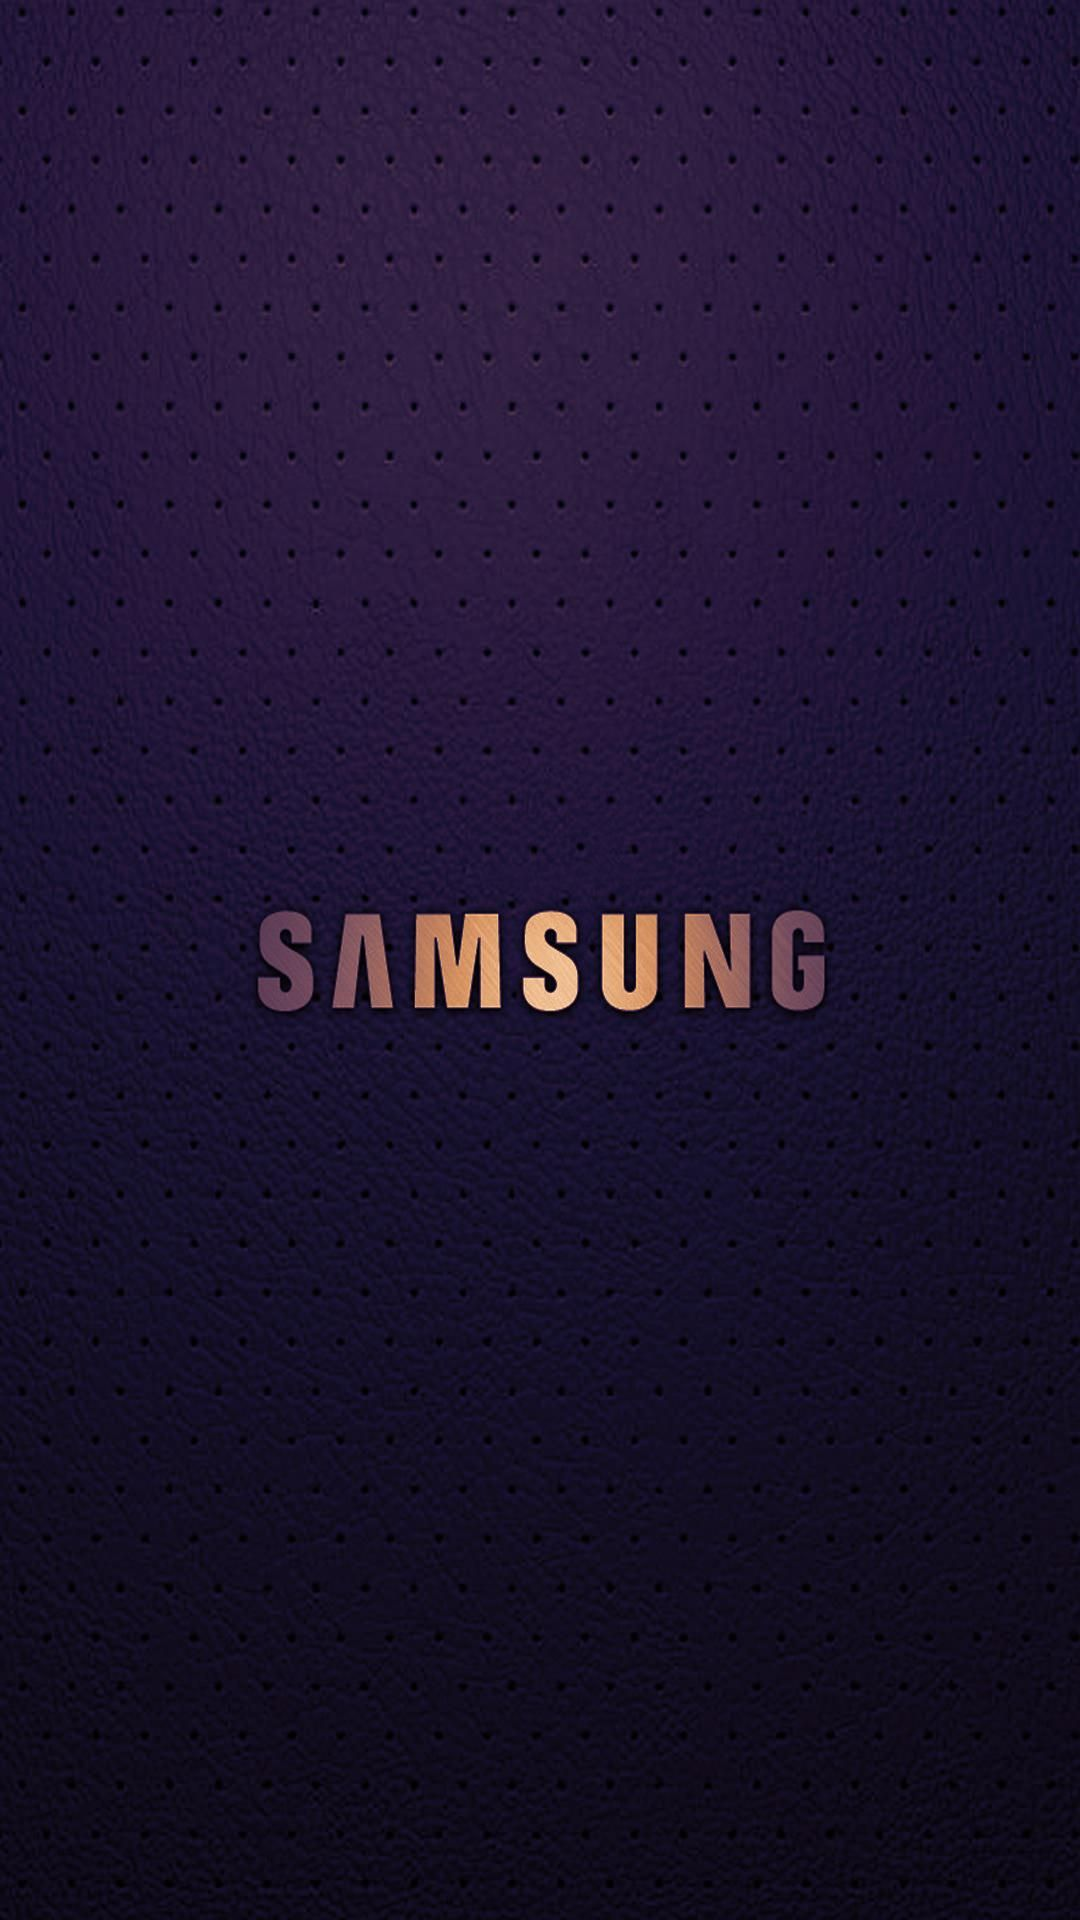 Samsung logo smartphone samsung in 2019 - Best wallpapers for s5 ...